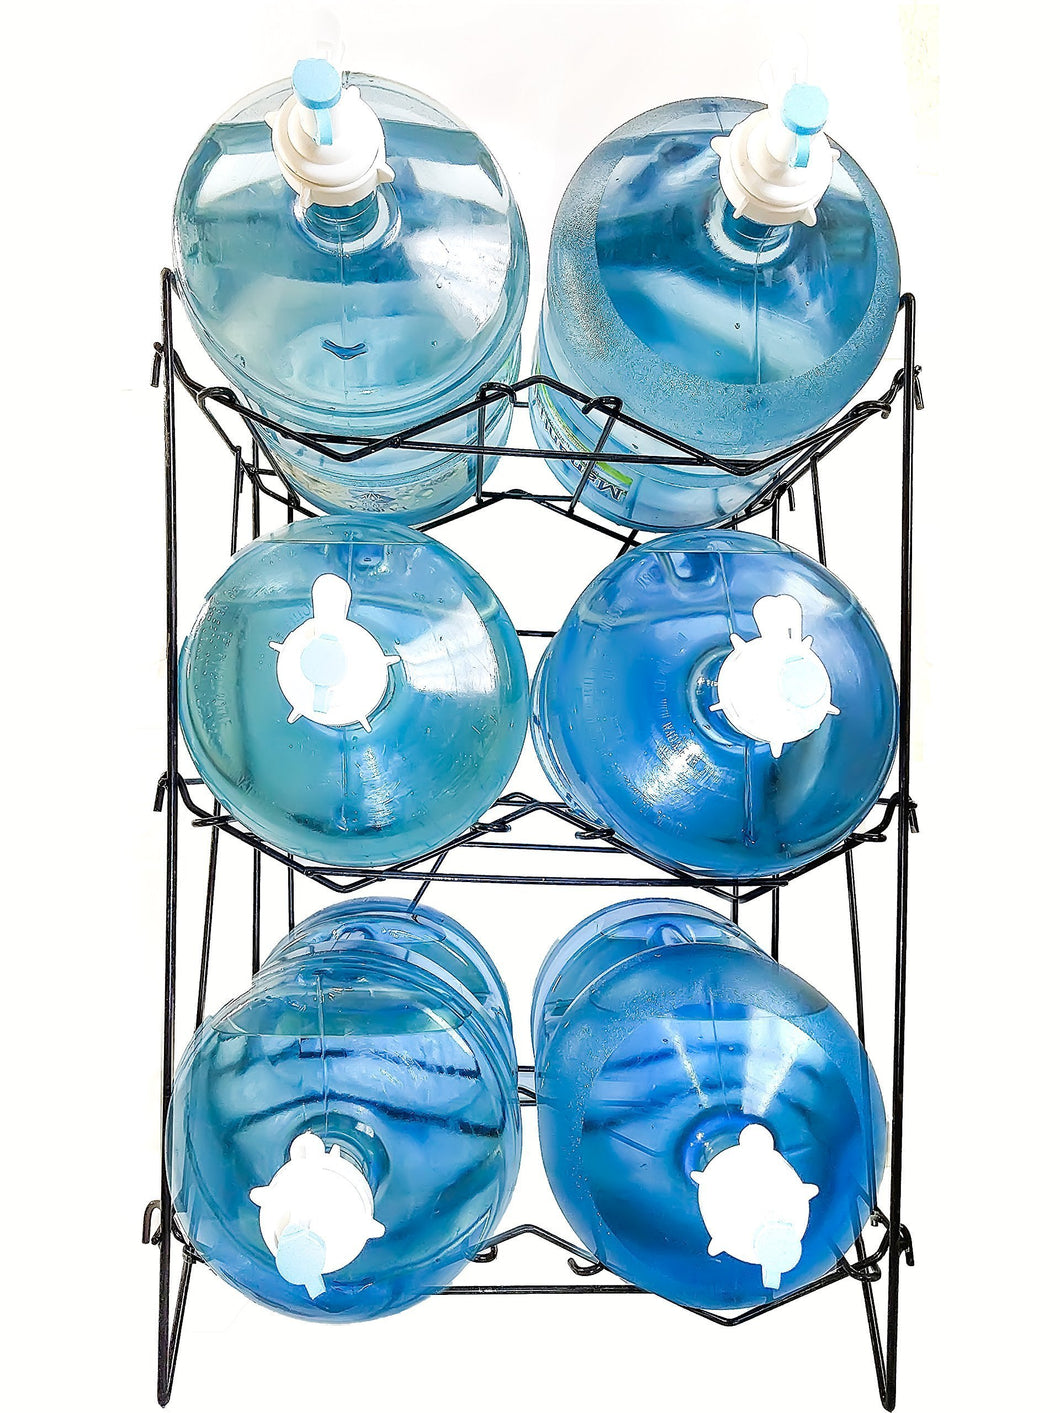 Buy now 3 to 5 gallon water bottle jug shelf rack holder stand kitchen storage instant set up stainless steel heavy duty collapsible sturdy durable portable fits anywhere only 11 lbs holds 400 lbs